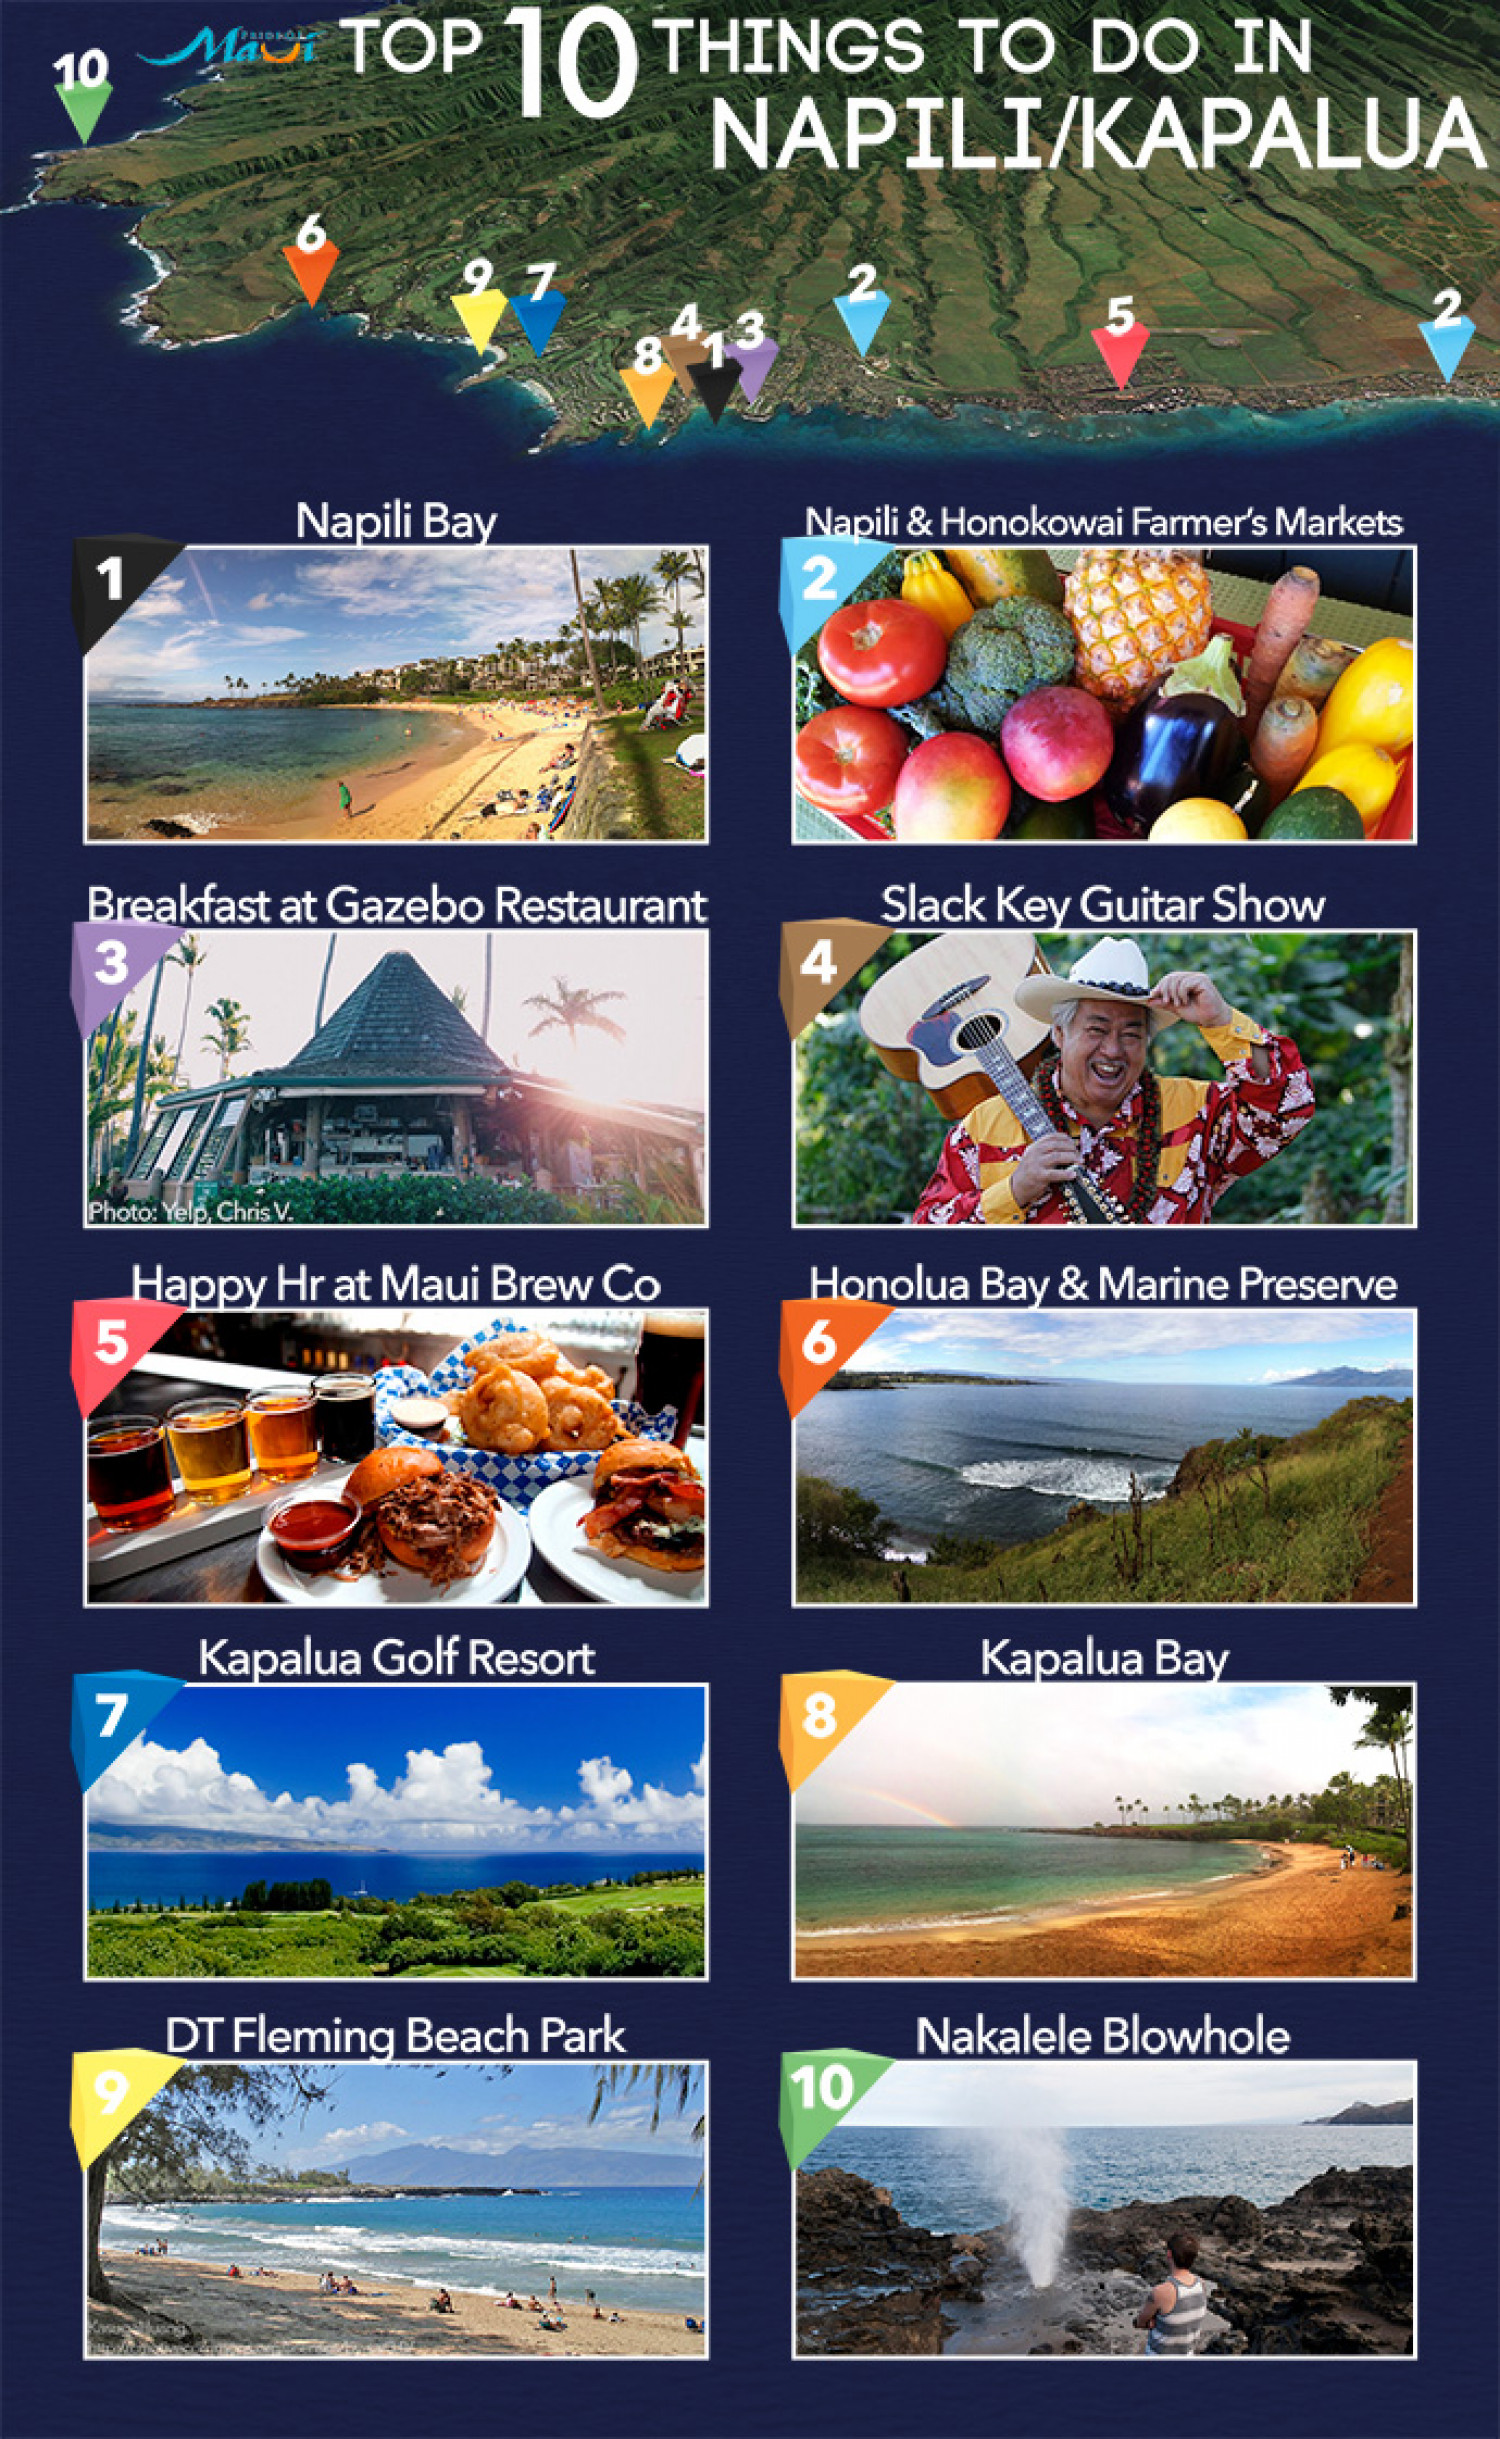 Top 10 Things To Do In Napili & Kapalua Infographic